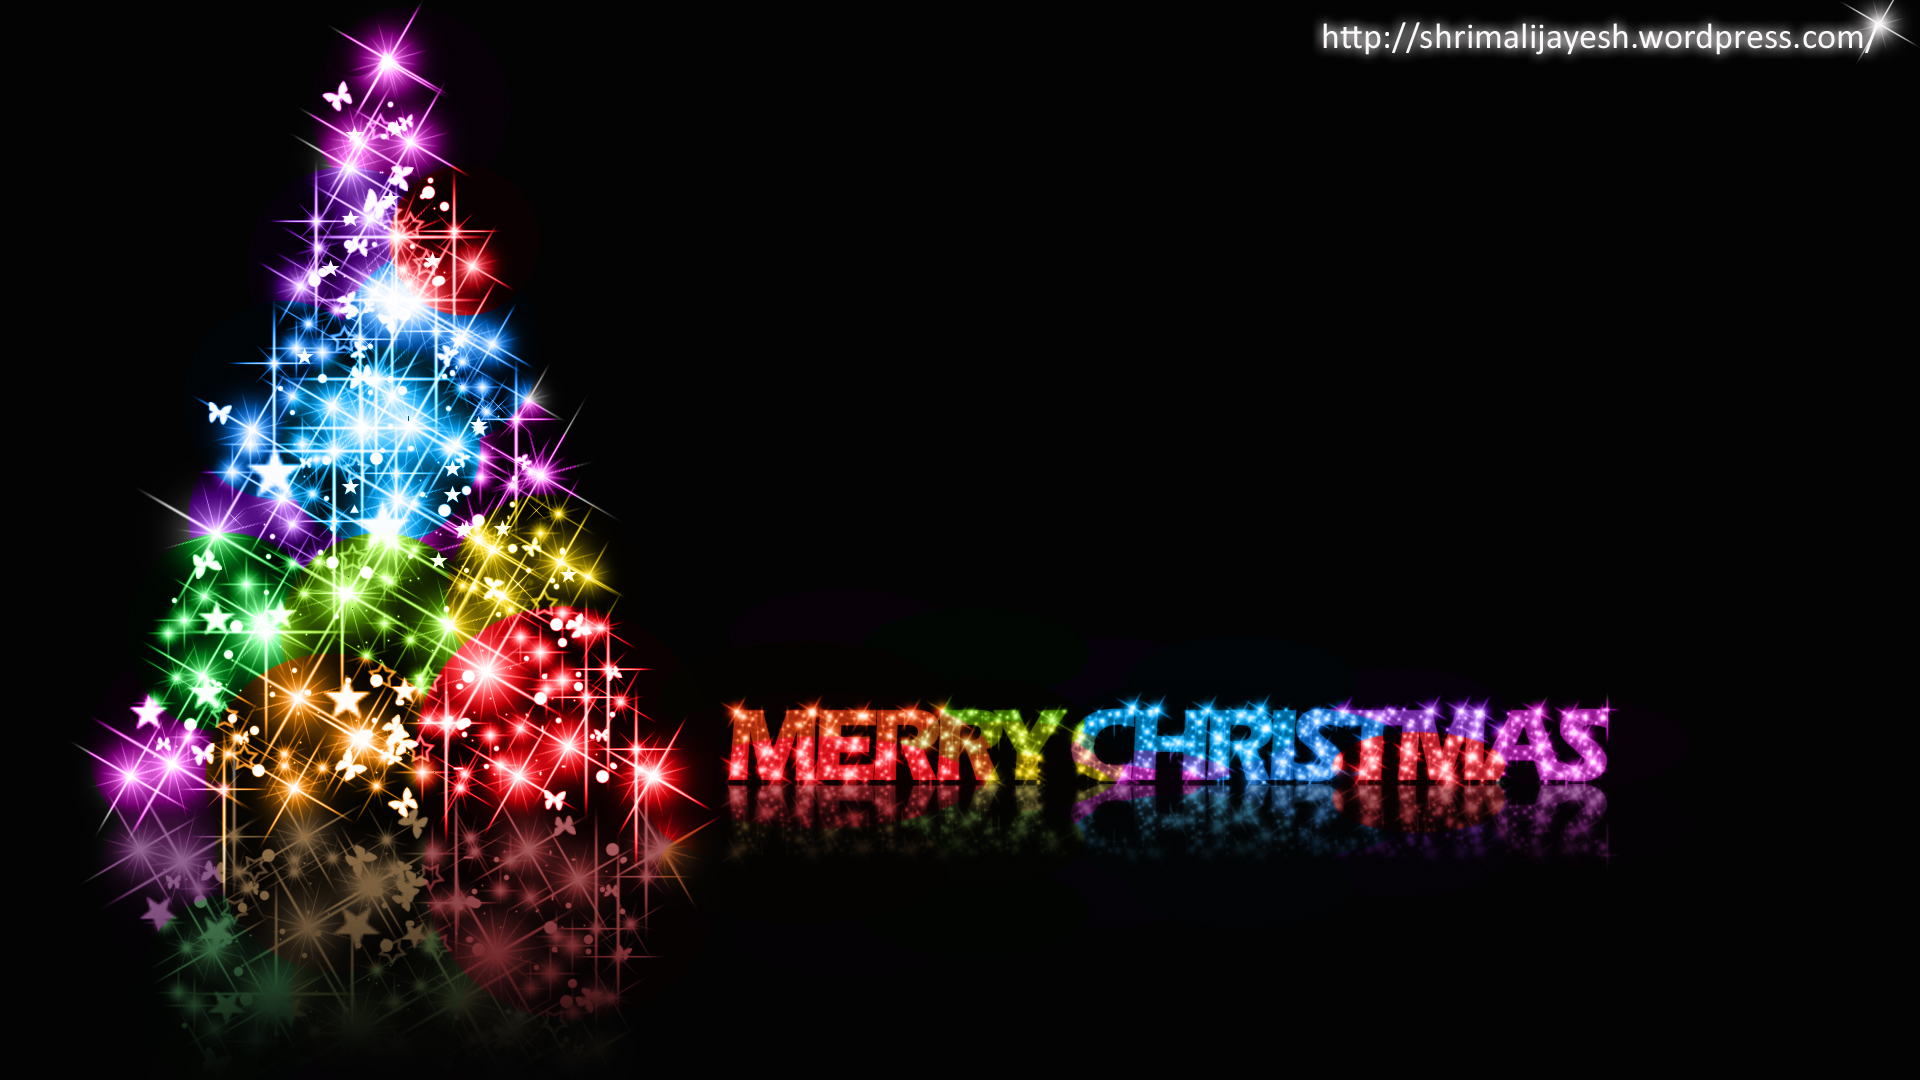 merry christmas wallpaper | jayesh shrimali